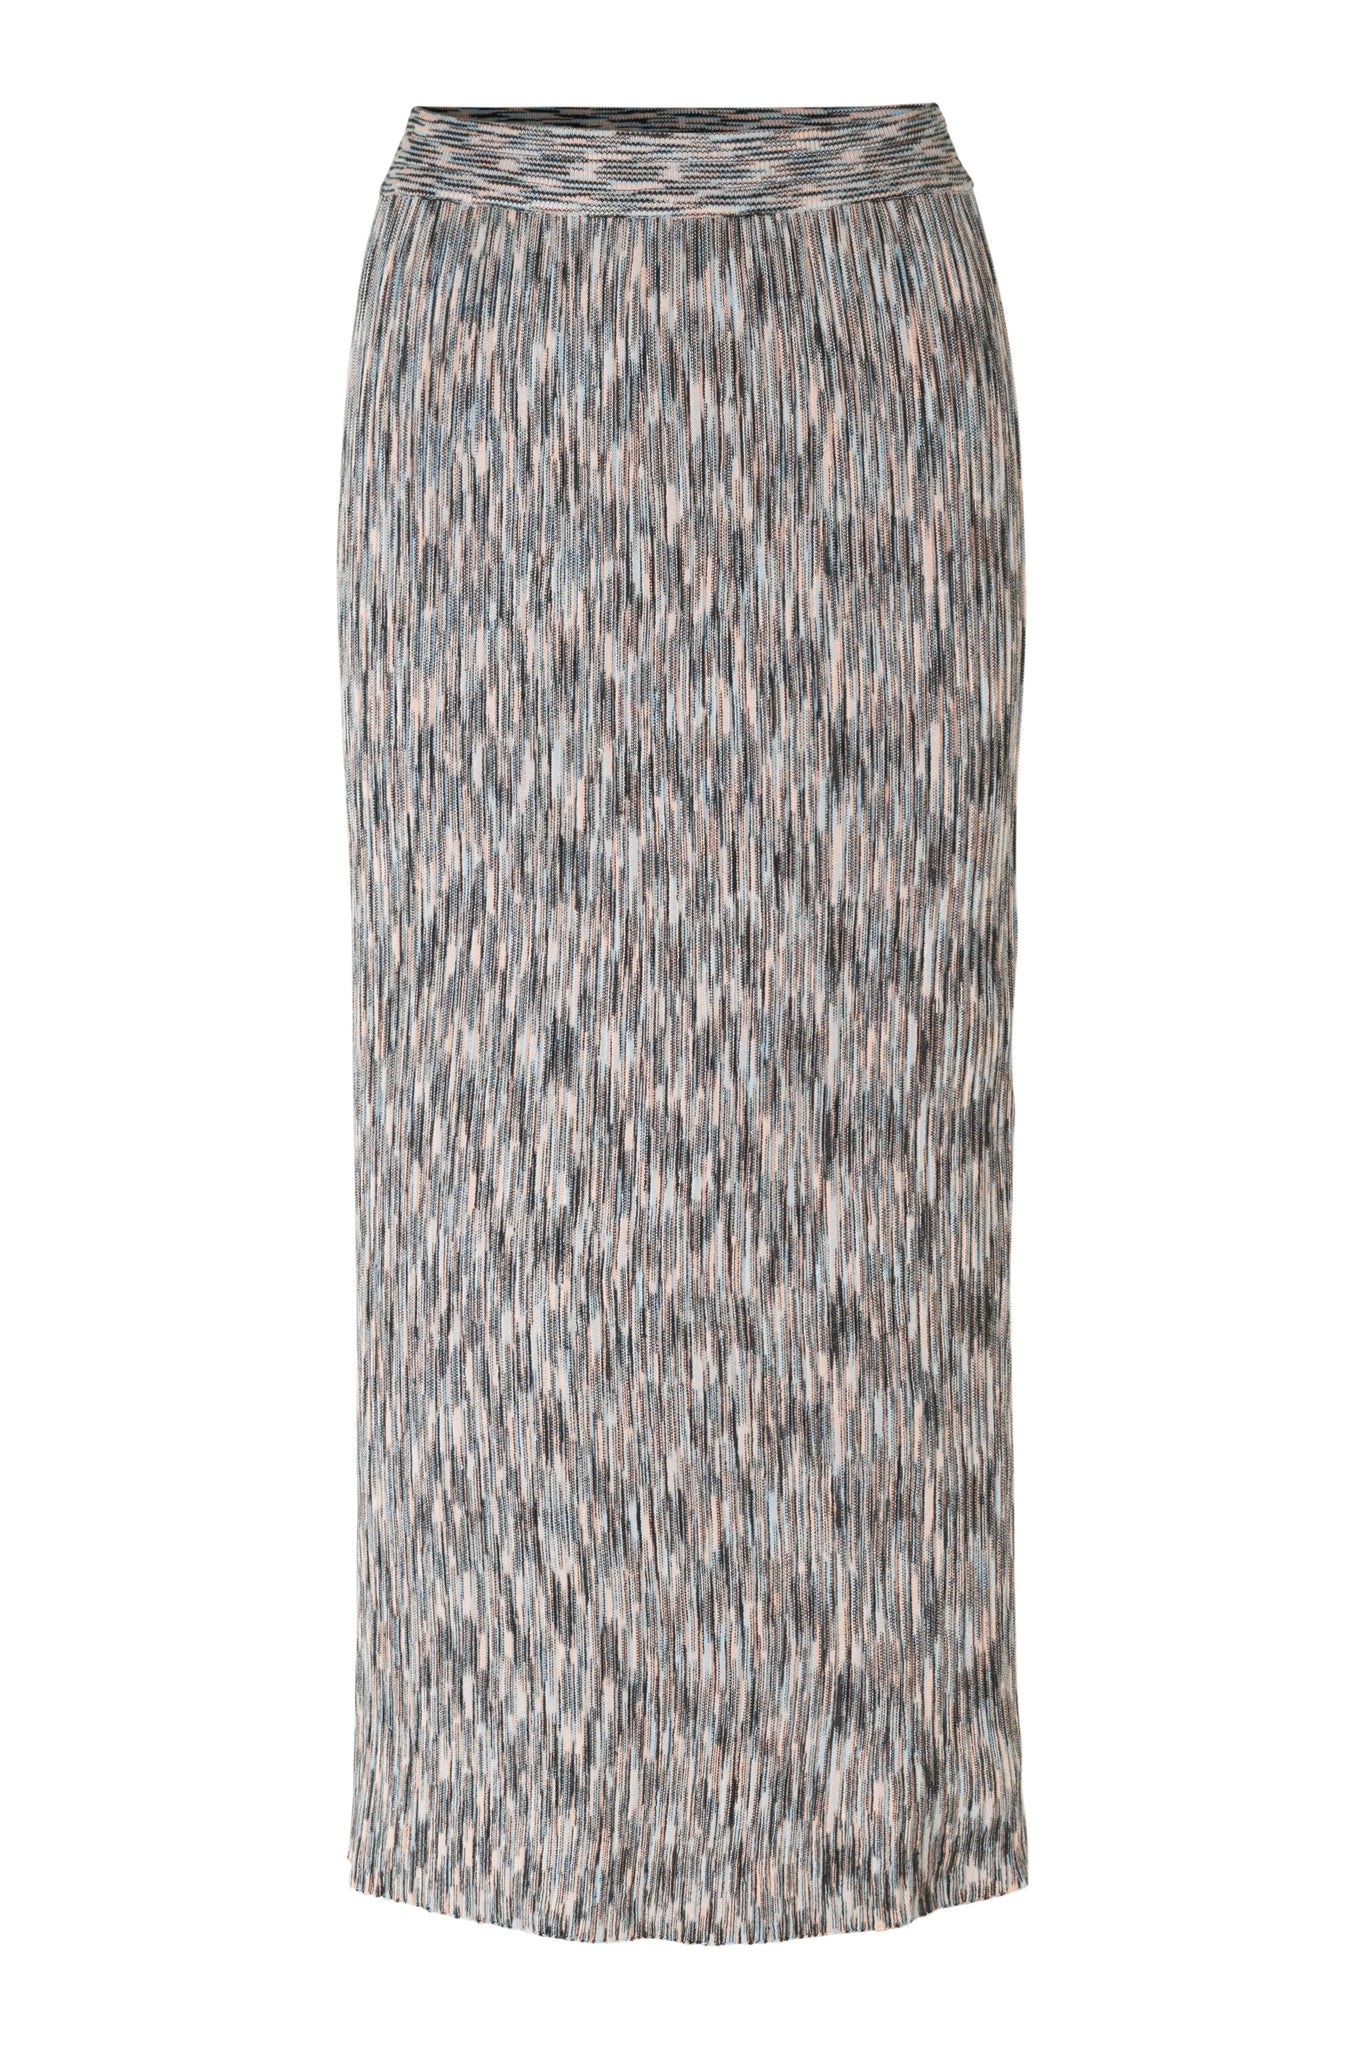 JUST FEMALE Pira knit skirt, pale blue - rose